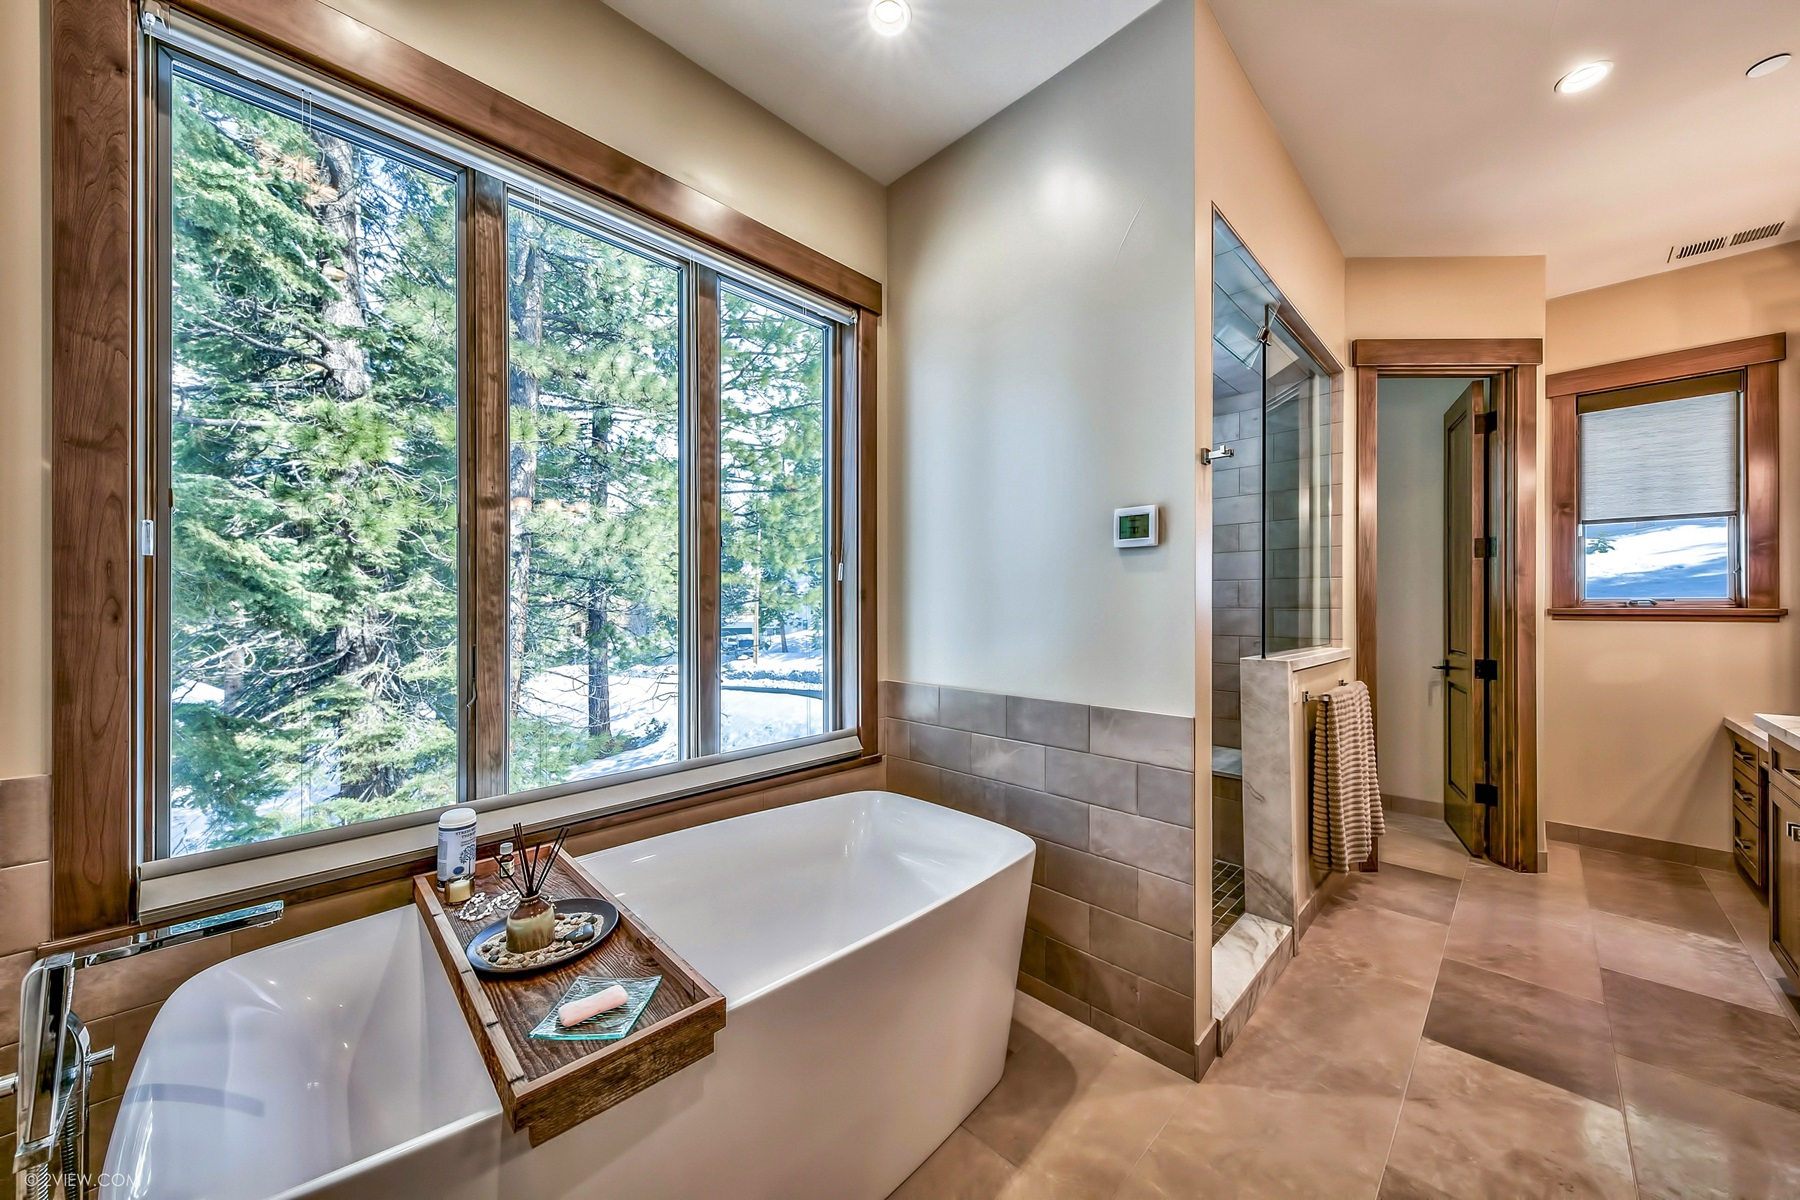 Additional photo for property listing at 391 First Green Drive, Incline Village, NV 89451 391 First Green Drive Incline Village, Nevada 89451 United States